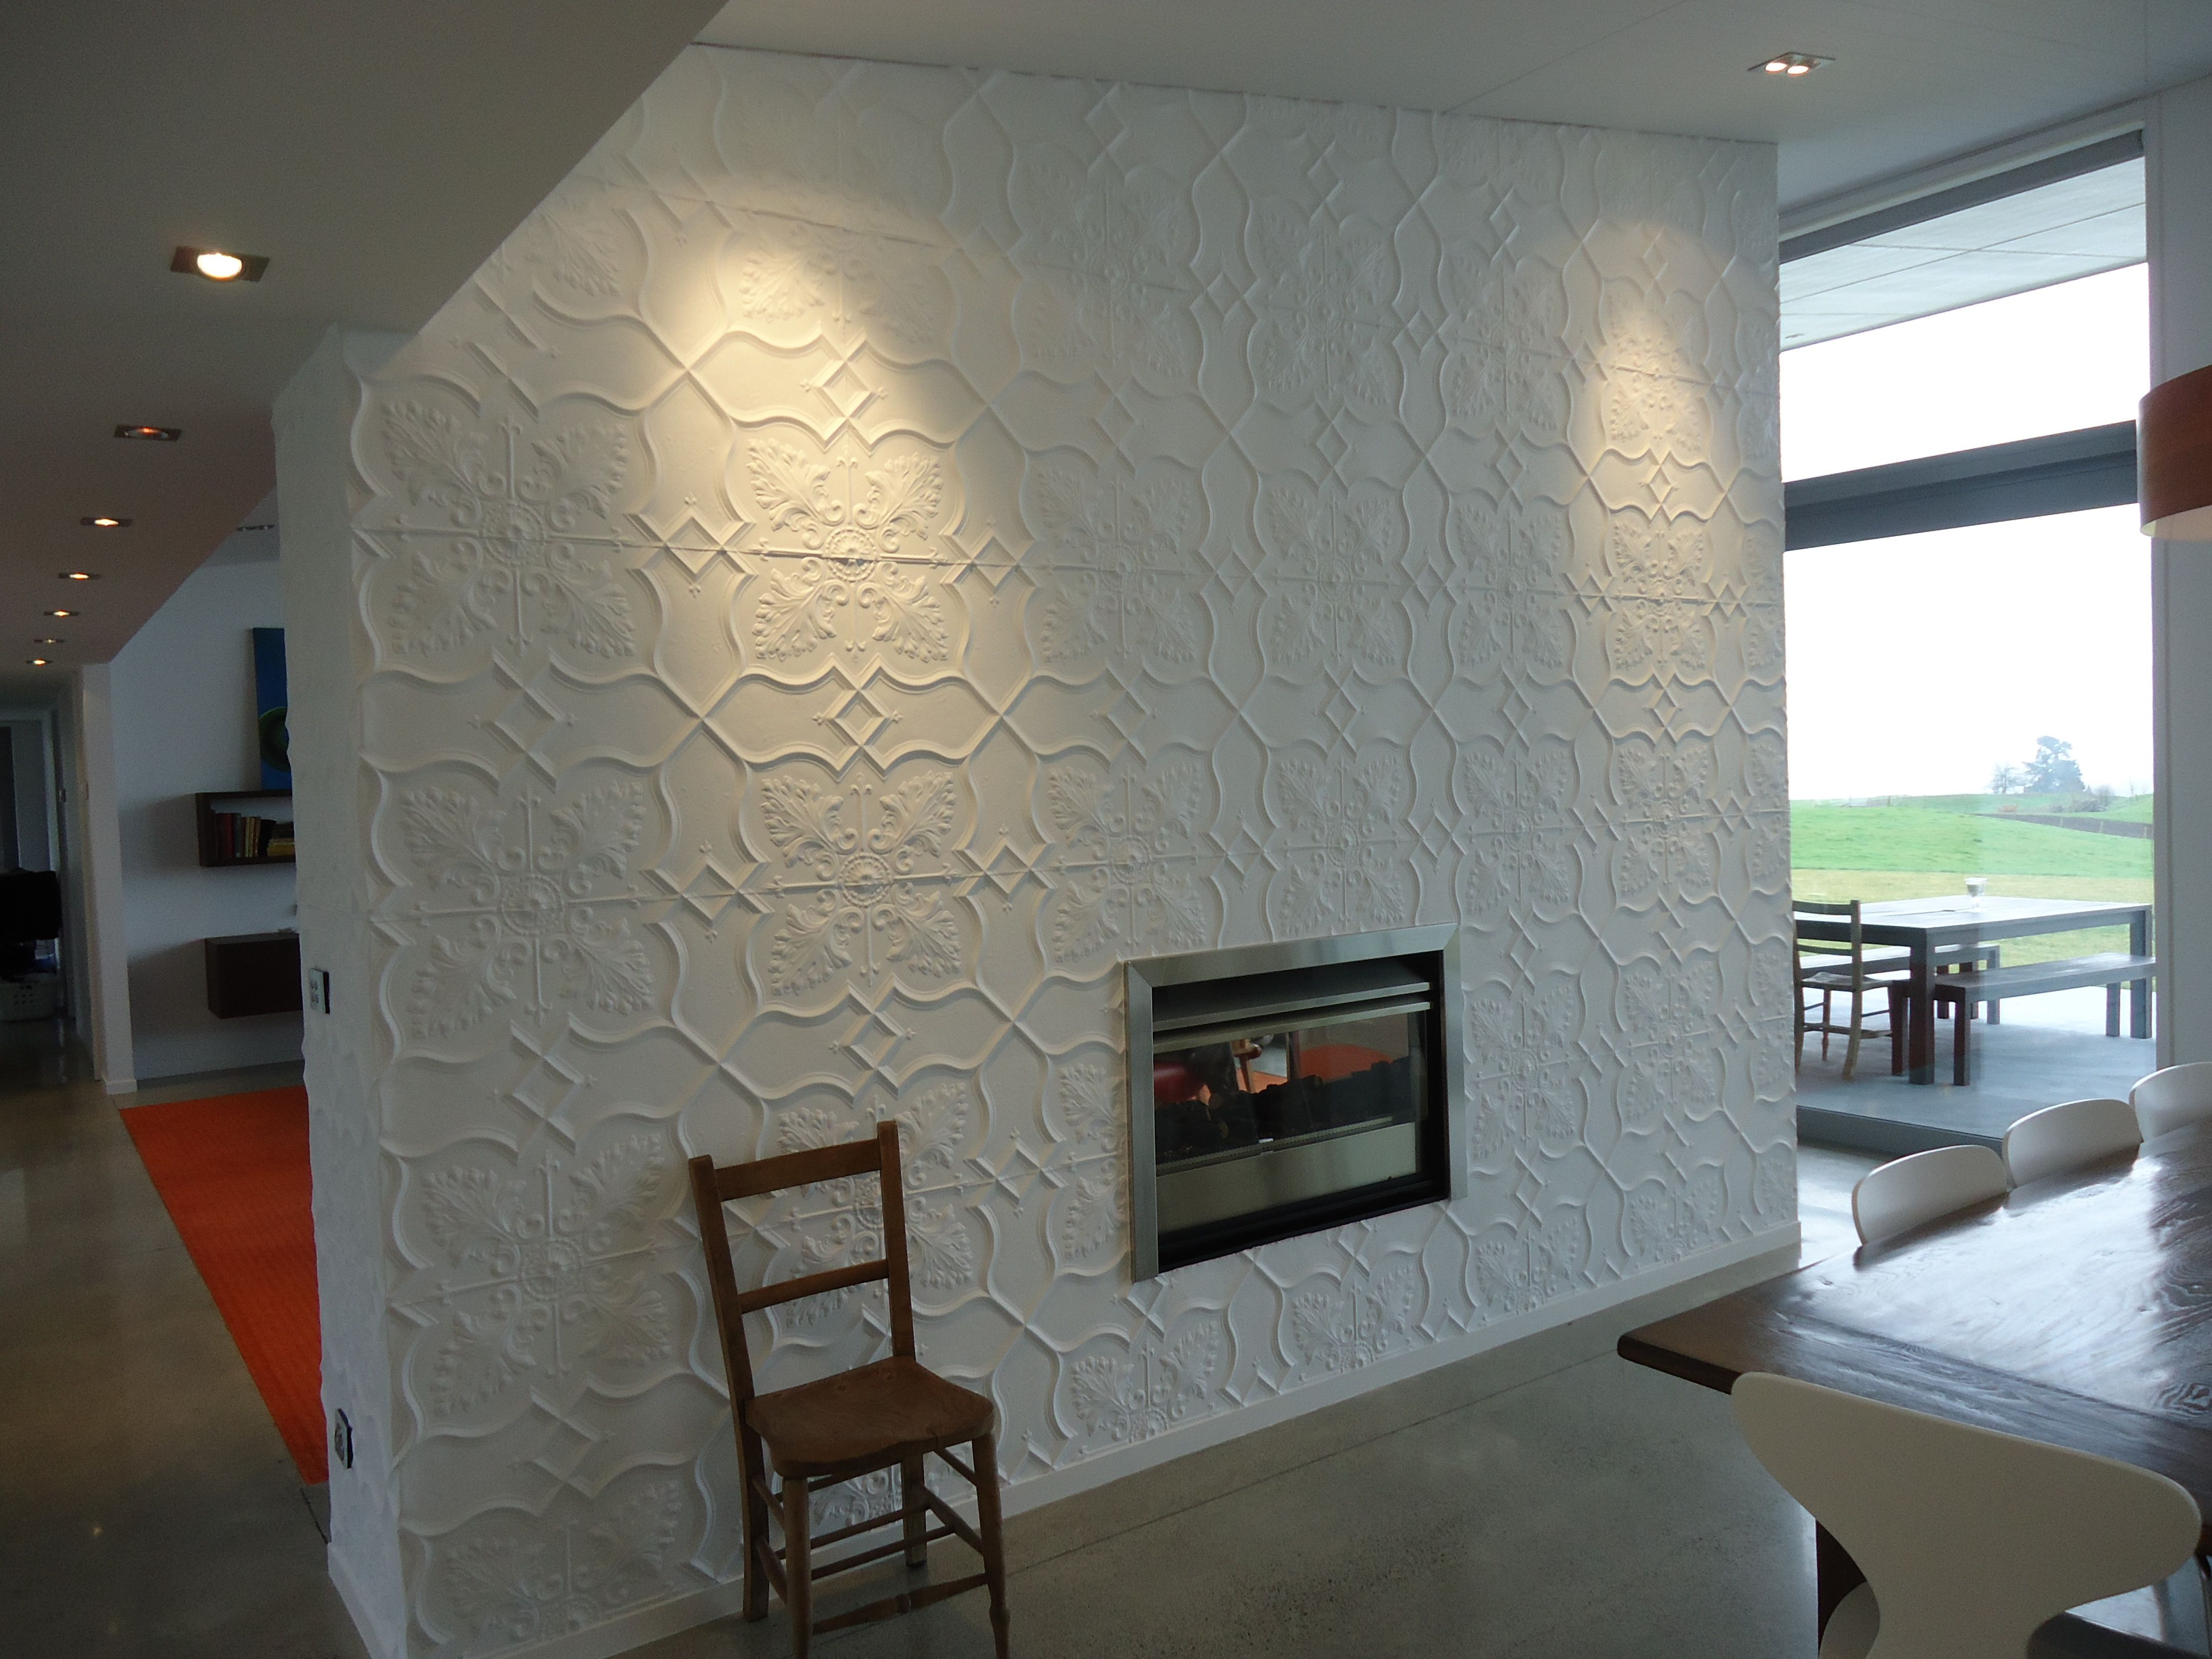 Pressed Tin Panel Feature Wall to create added texture to